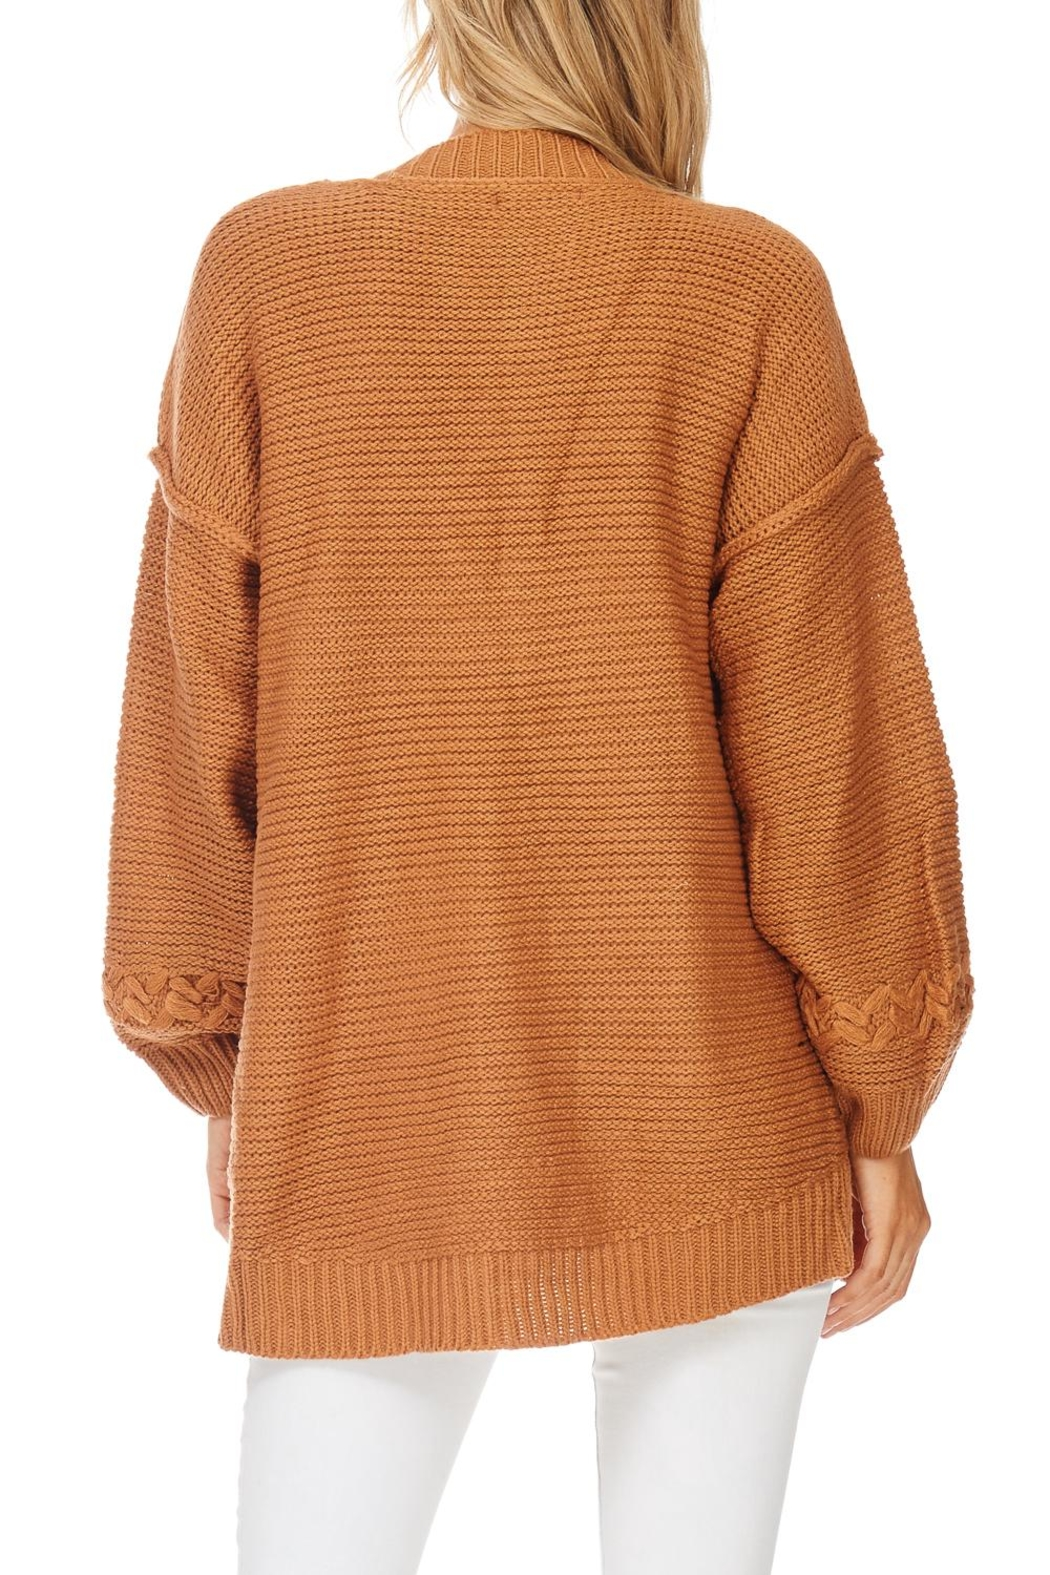 LoveRiche Solid Knit Sweater Cardigan from Las Vegas by Apricot ...